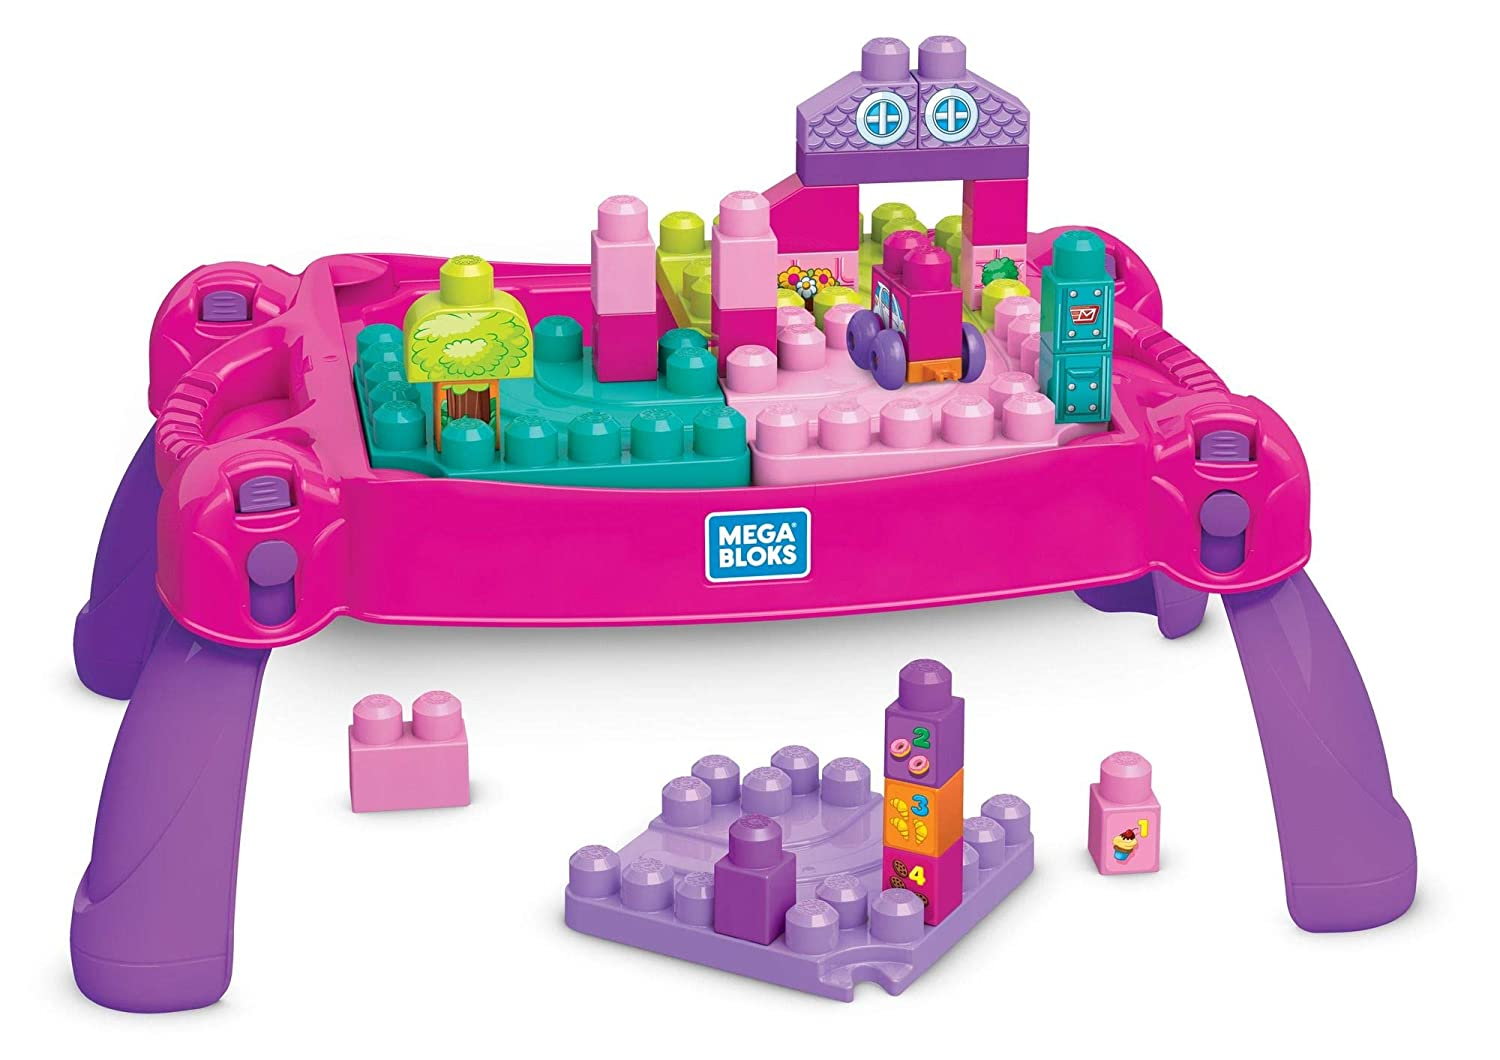 Mega Bloks Build 'N Learn Table, Pink Mattel FFG22